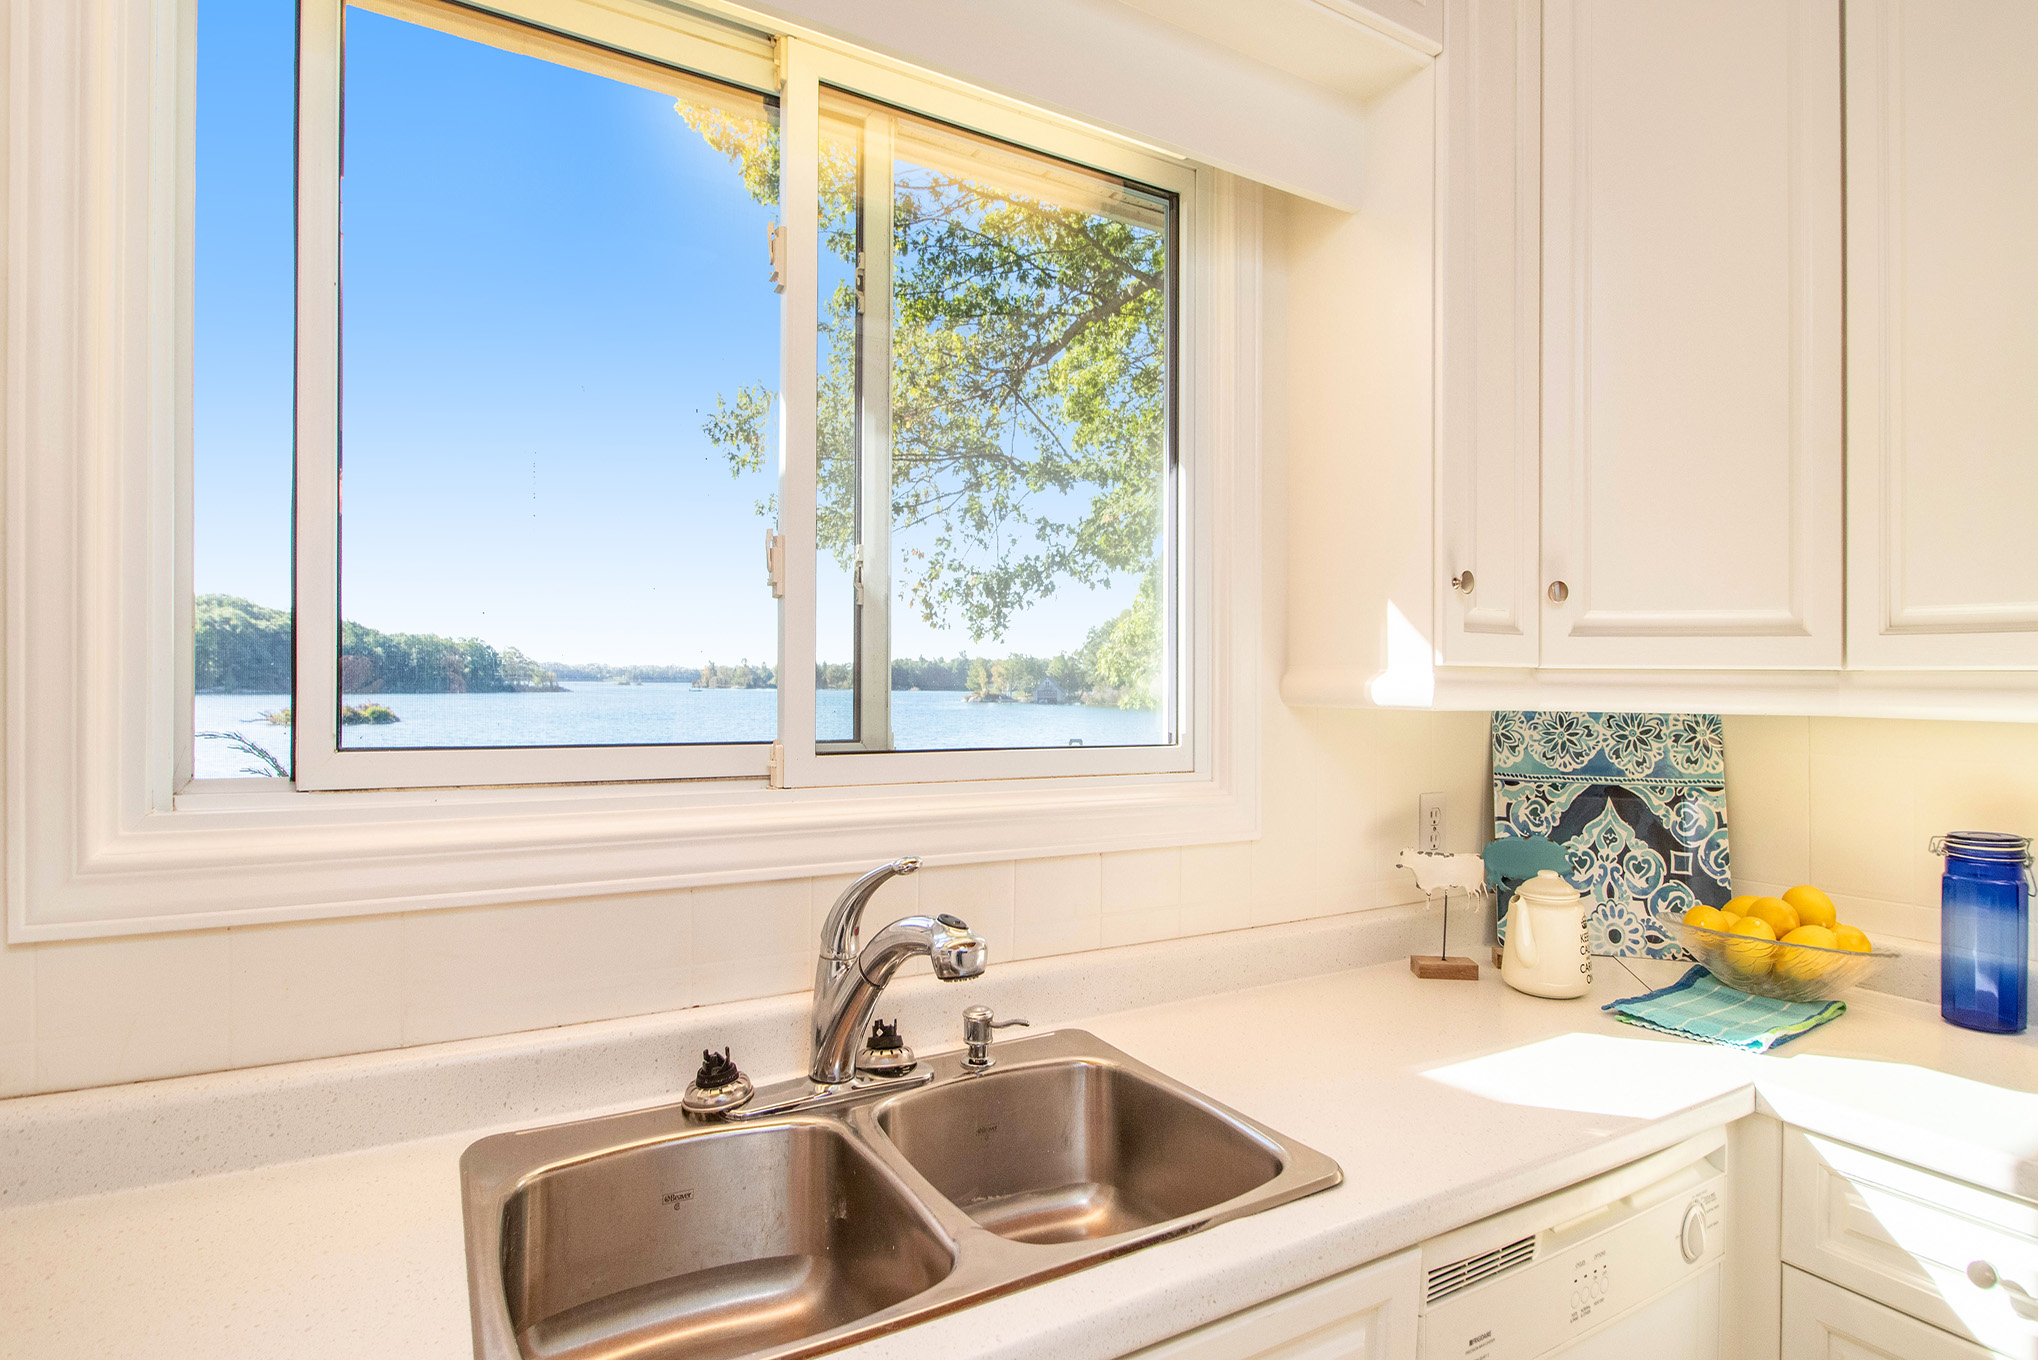 Nicely update galley style kitchen.  You will never want to stop hand washing dishes with this view.  Bright, white, and clean.  Plans on hand for your dream kitchen should this one not be to your liking...